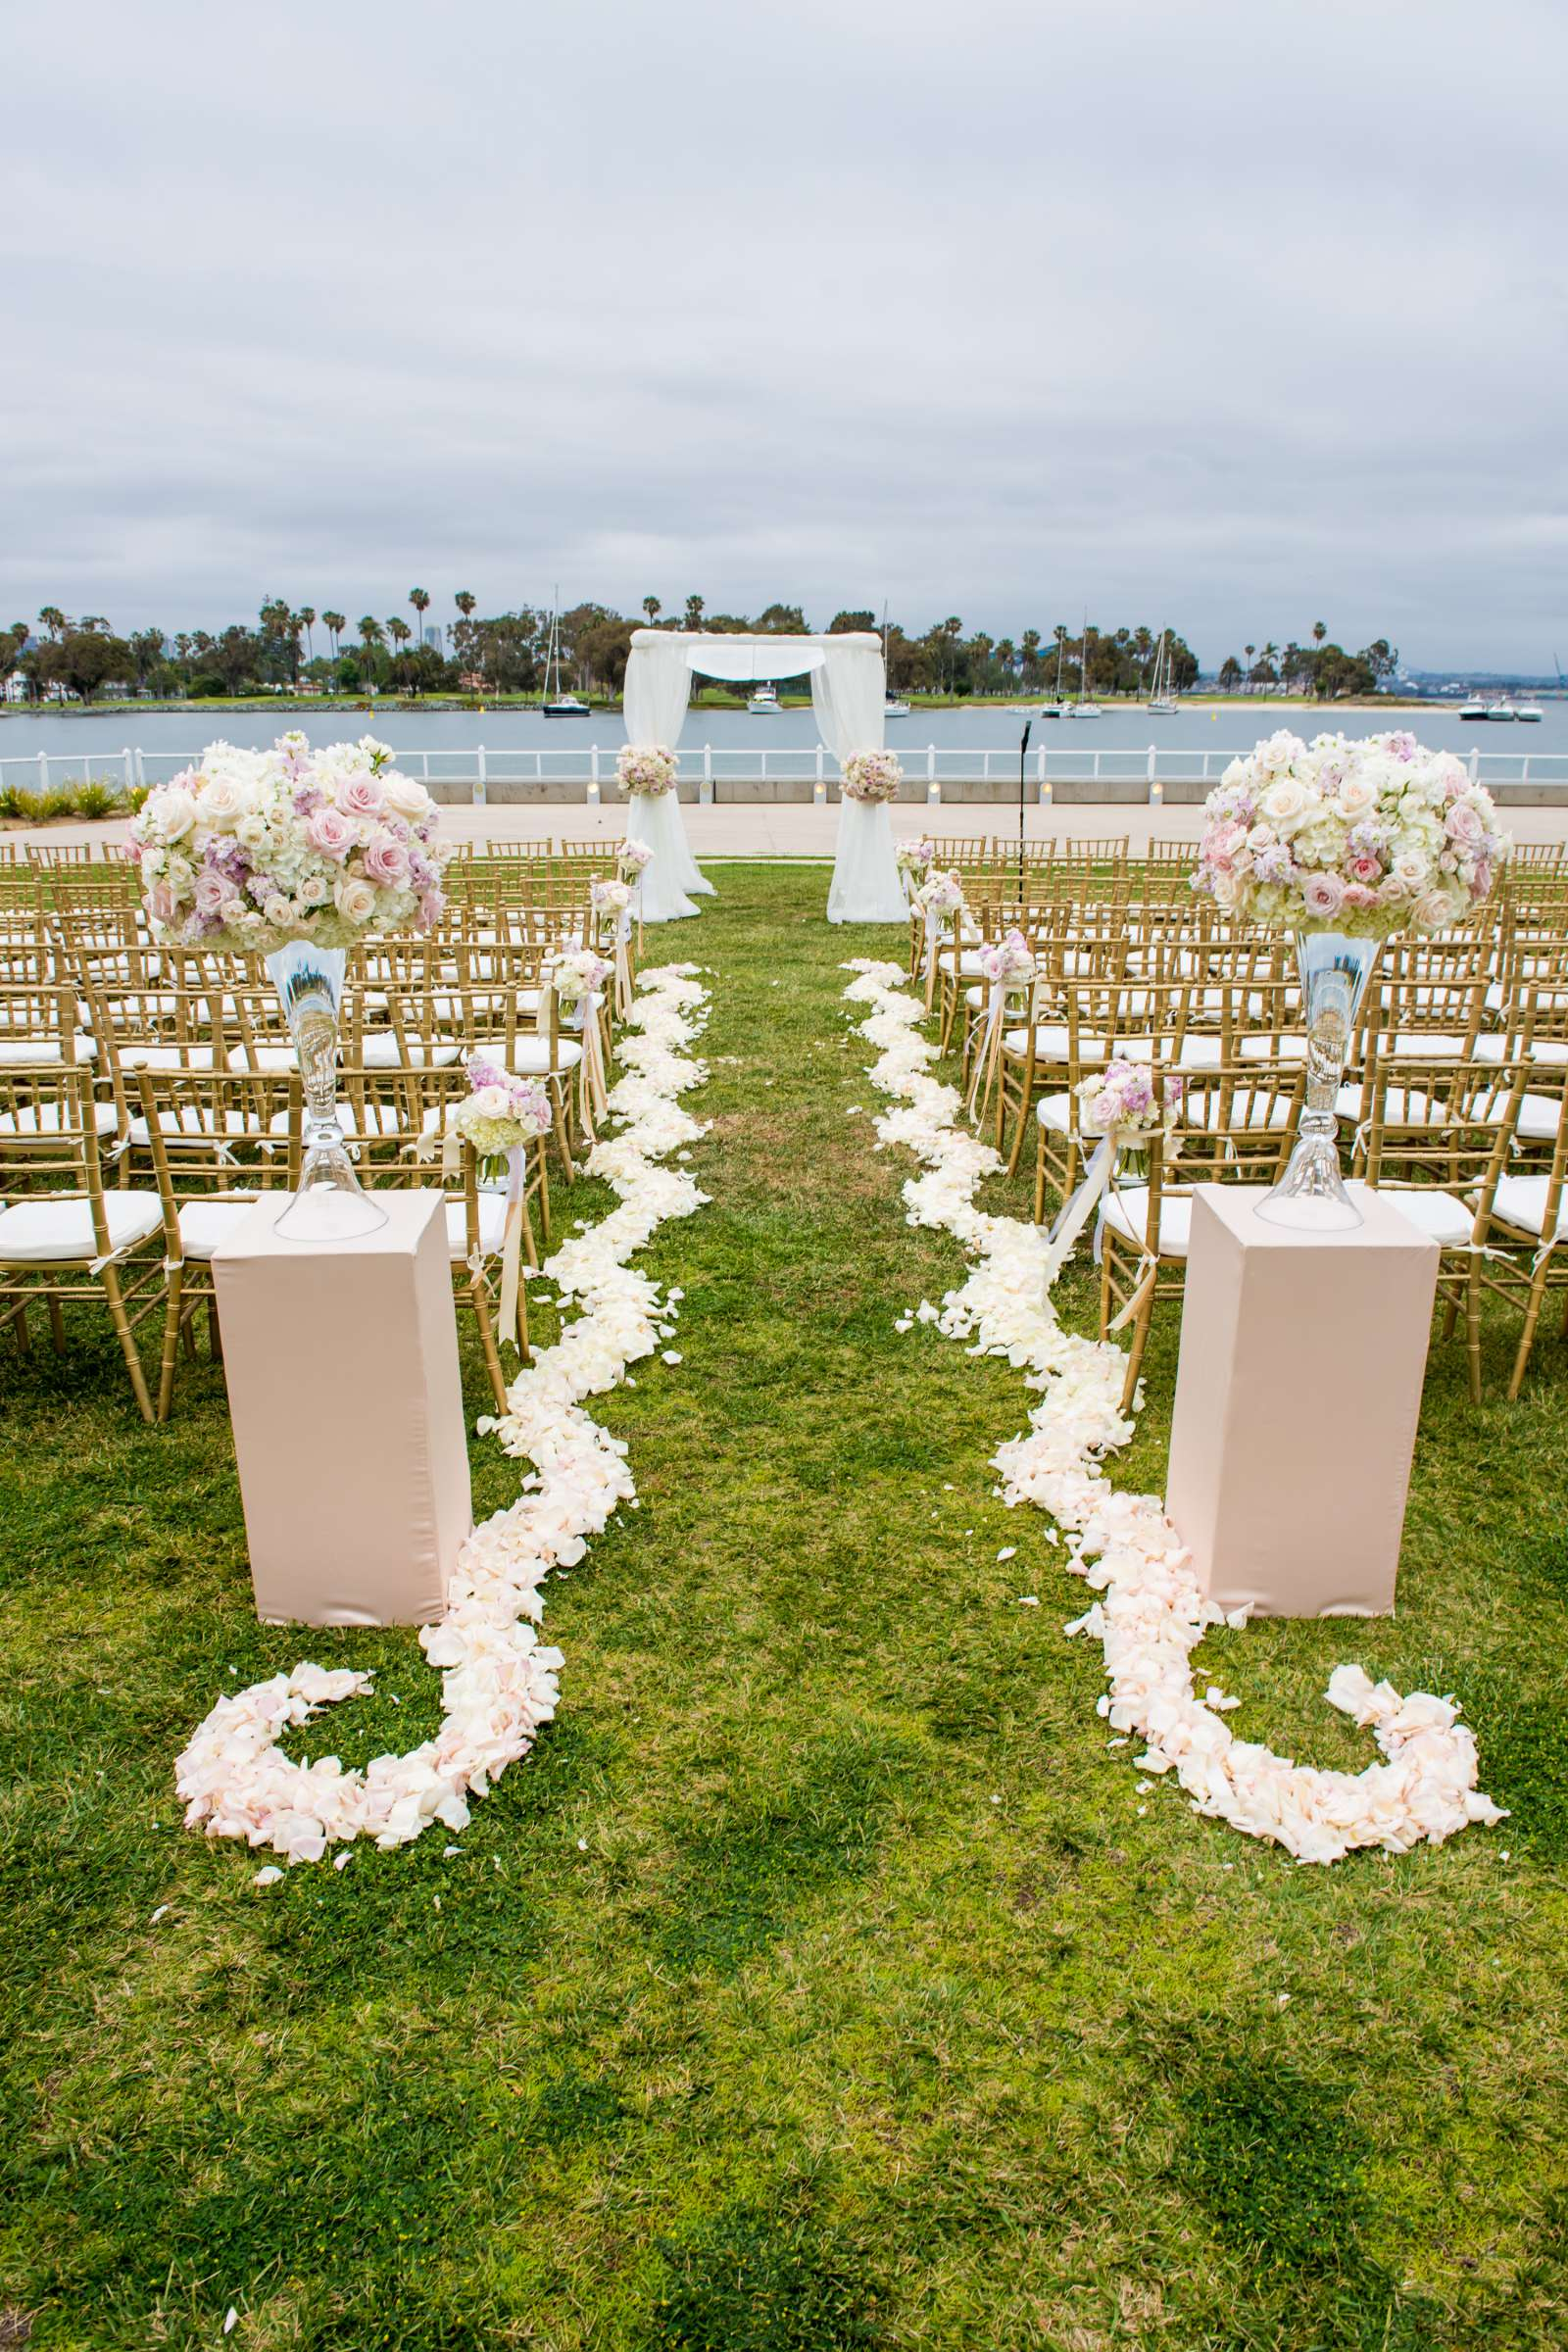 Coronado Community Center Wedding coordinated by First Comes Love Weddings & Events, Nikia and Charles Wedding Photo #9 by True Photography